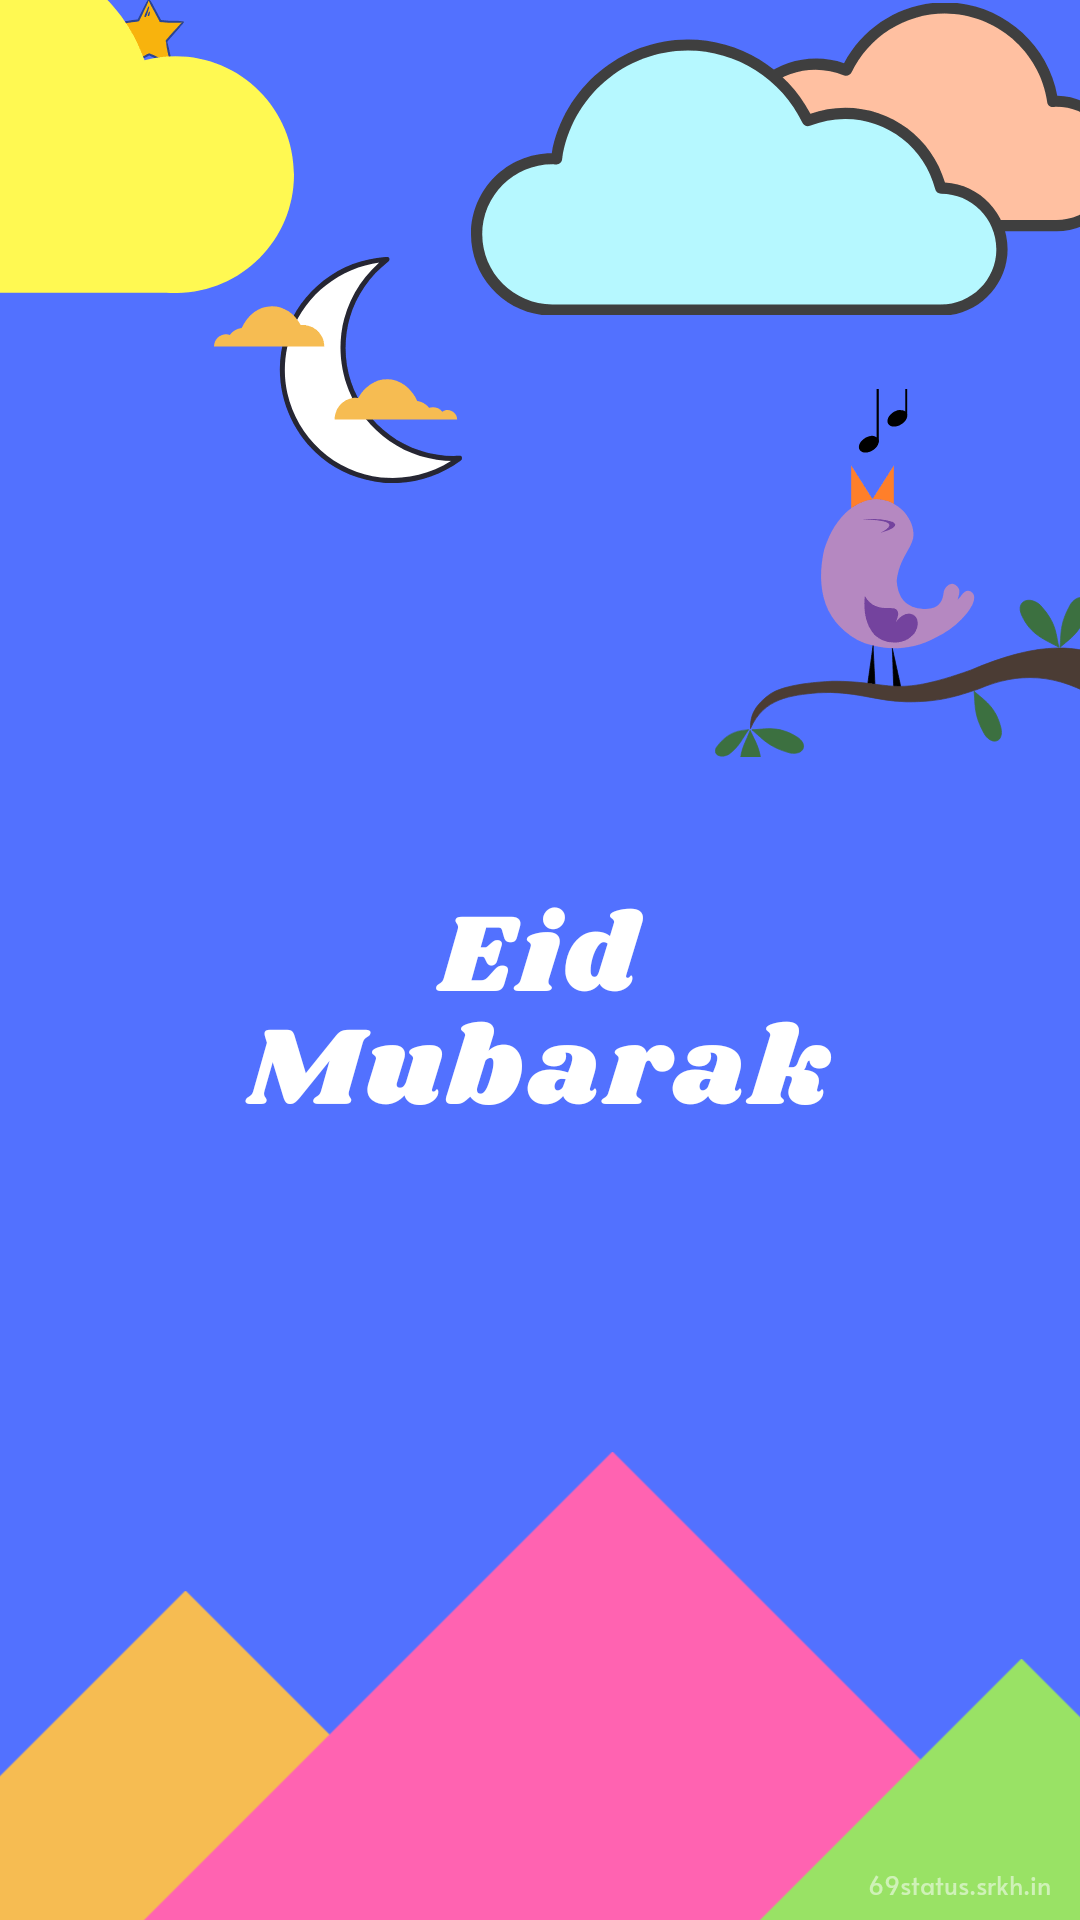 Eid Mubarak beautiful wallpaper hd full HD free download.